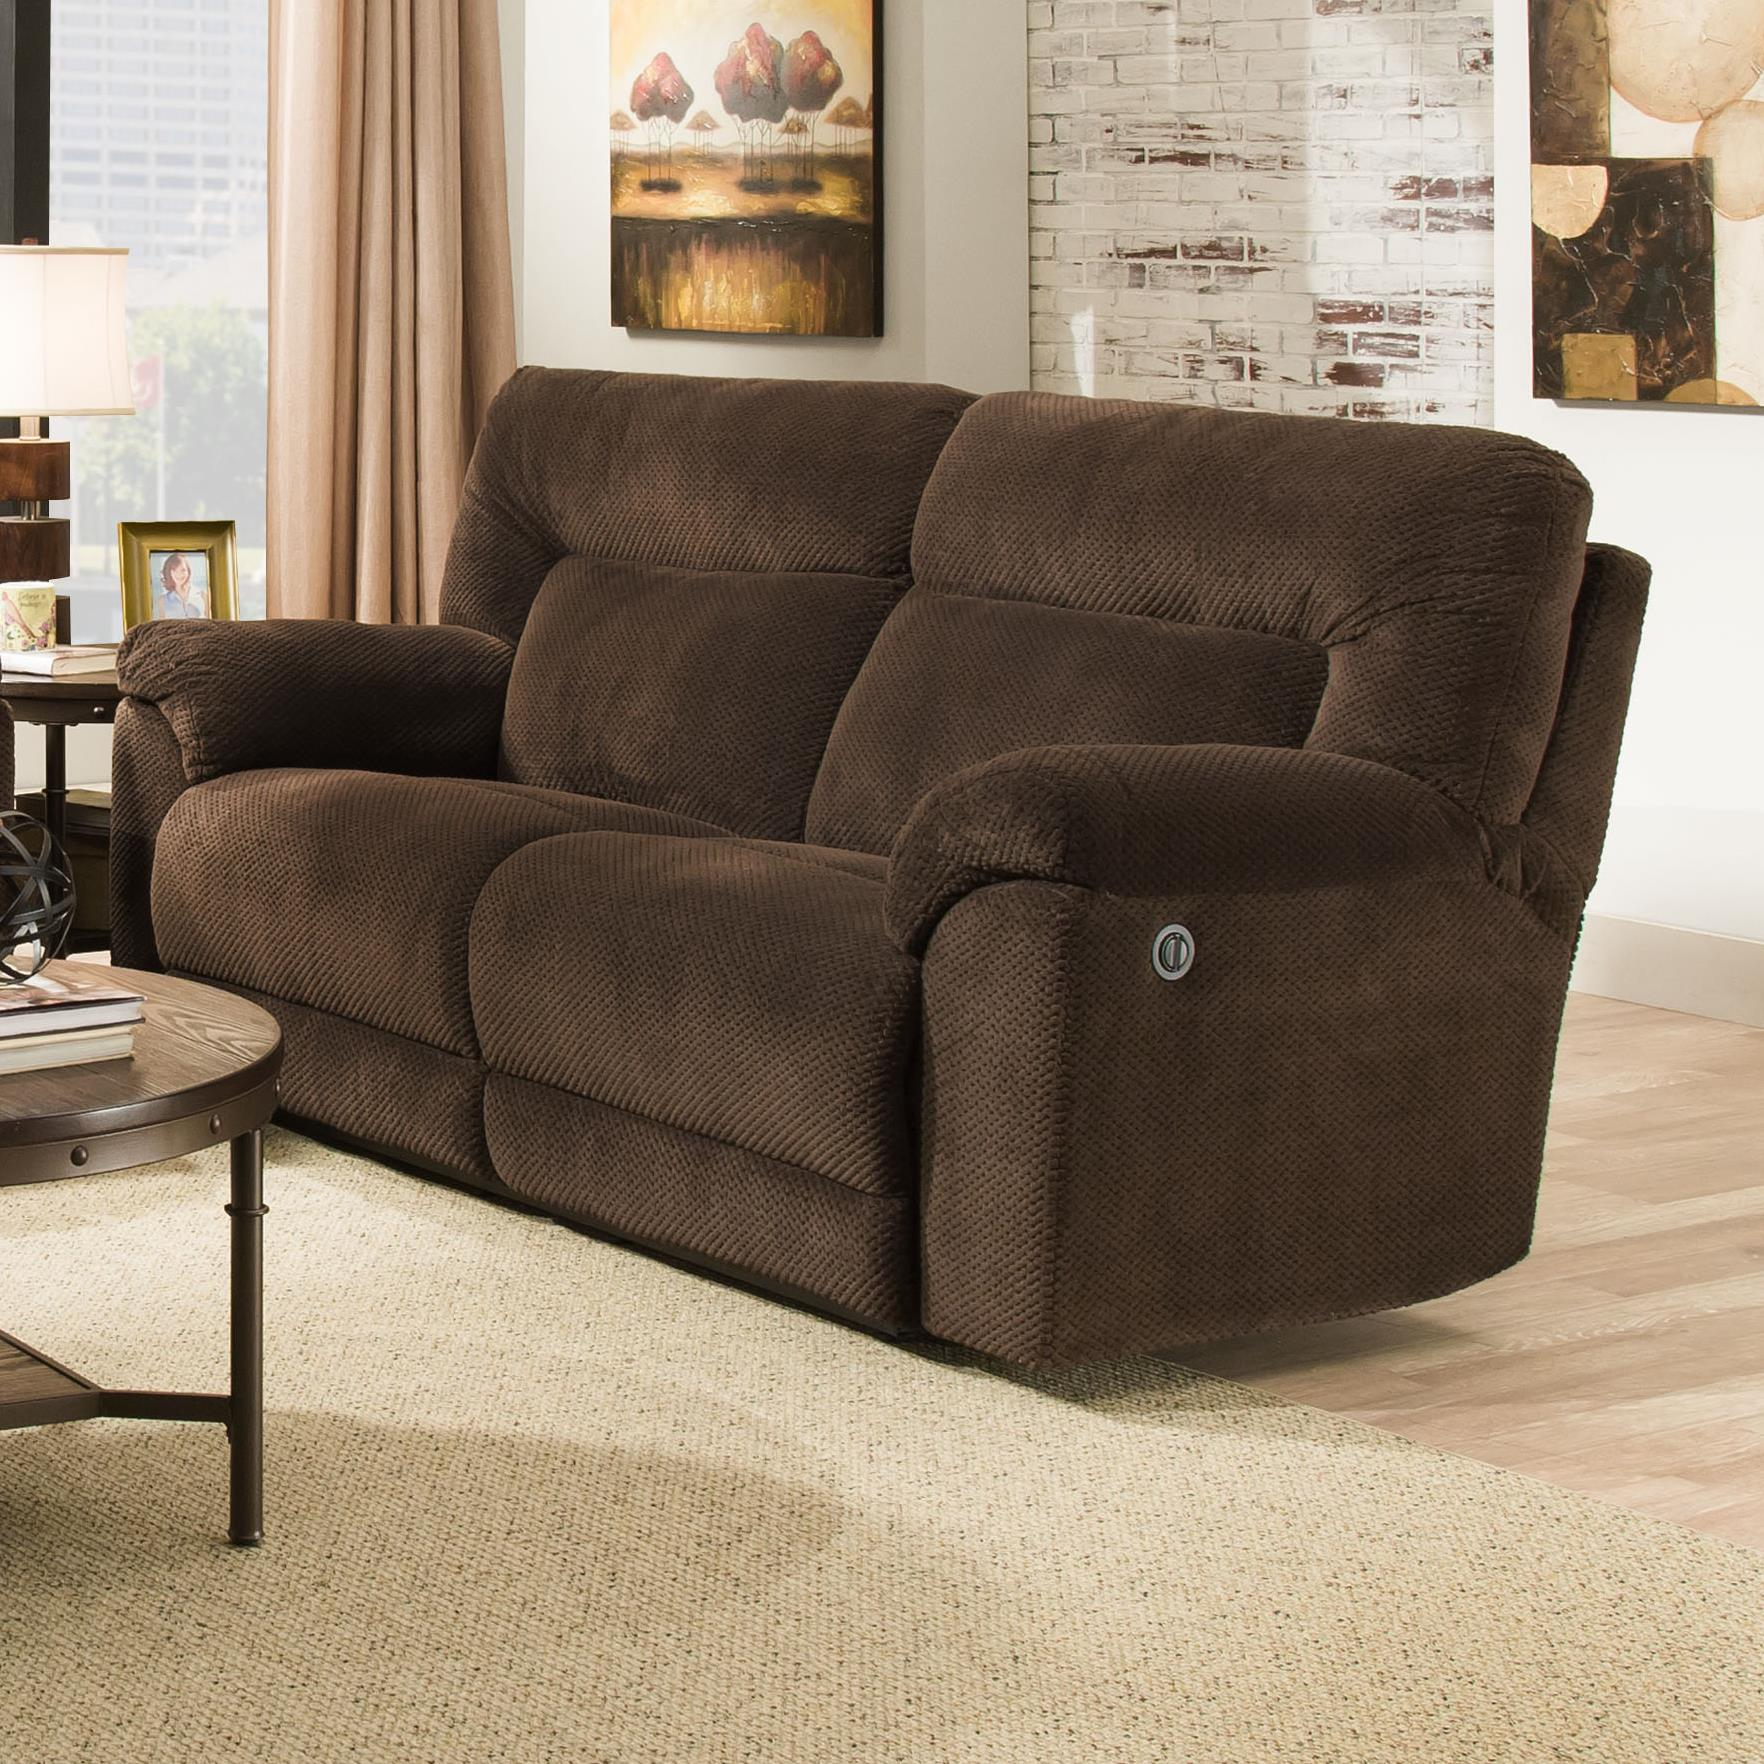 50570 Power Double Motion Sofa by United Furniture Industries at Dream Home Interiors